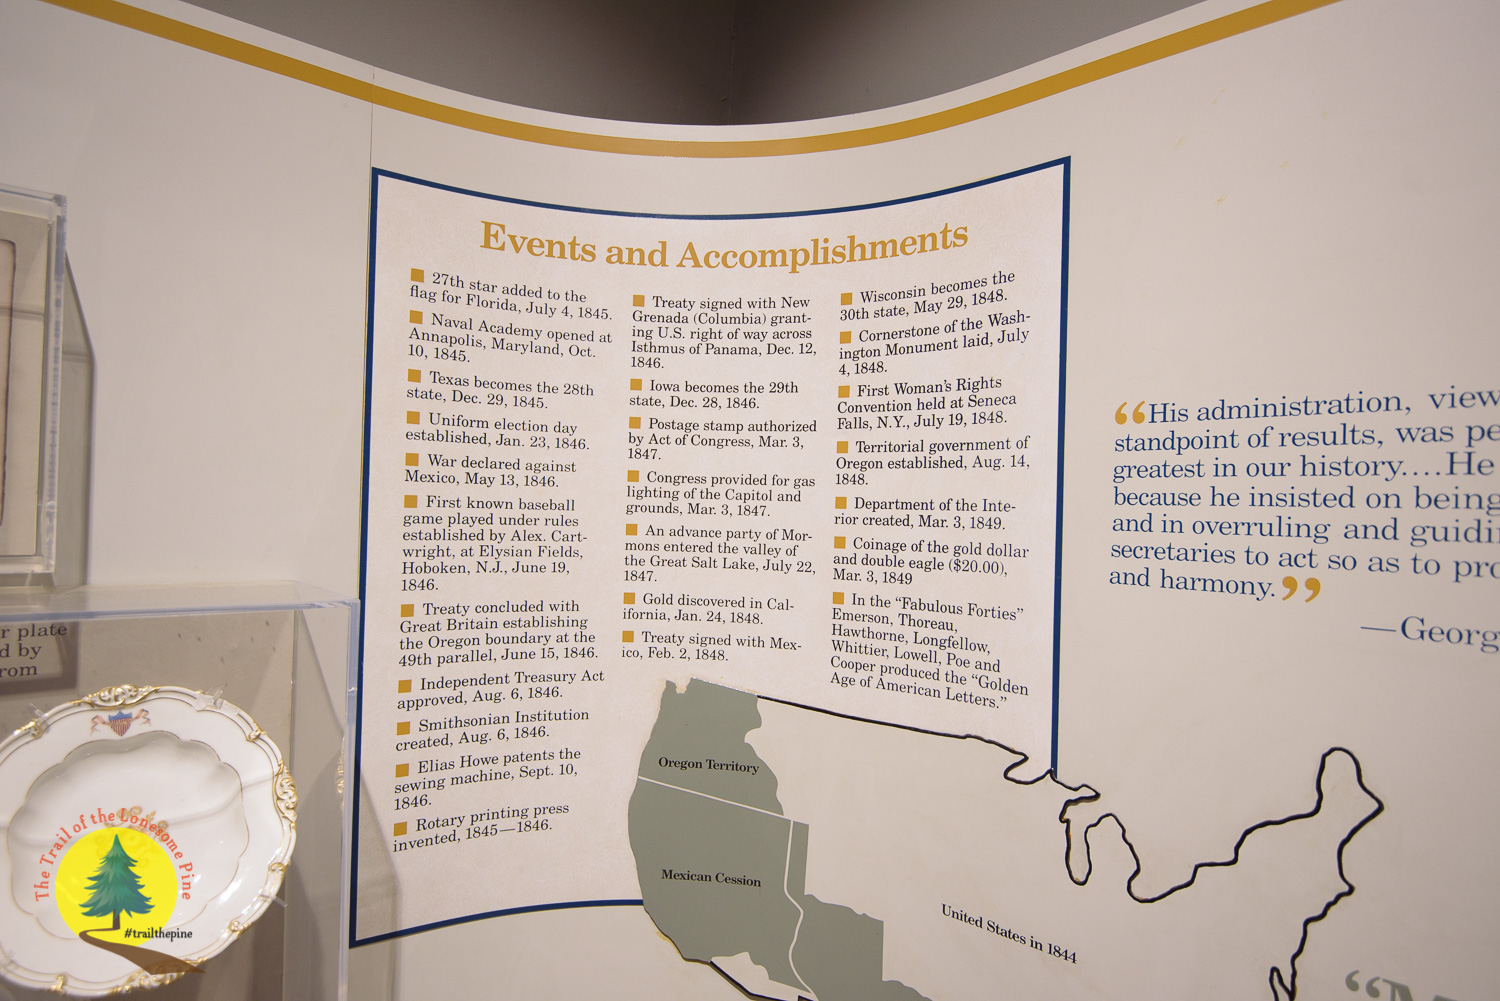 As shown, James K. Polk had many accomplishments